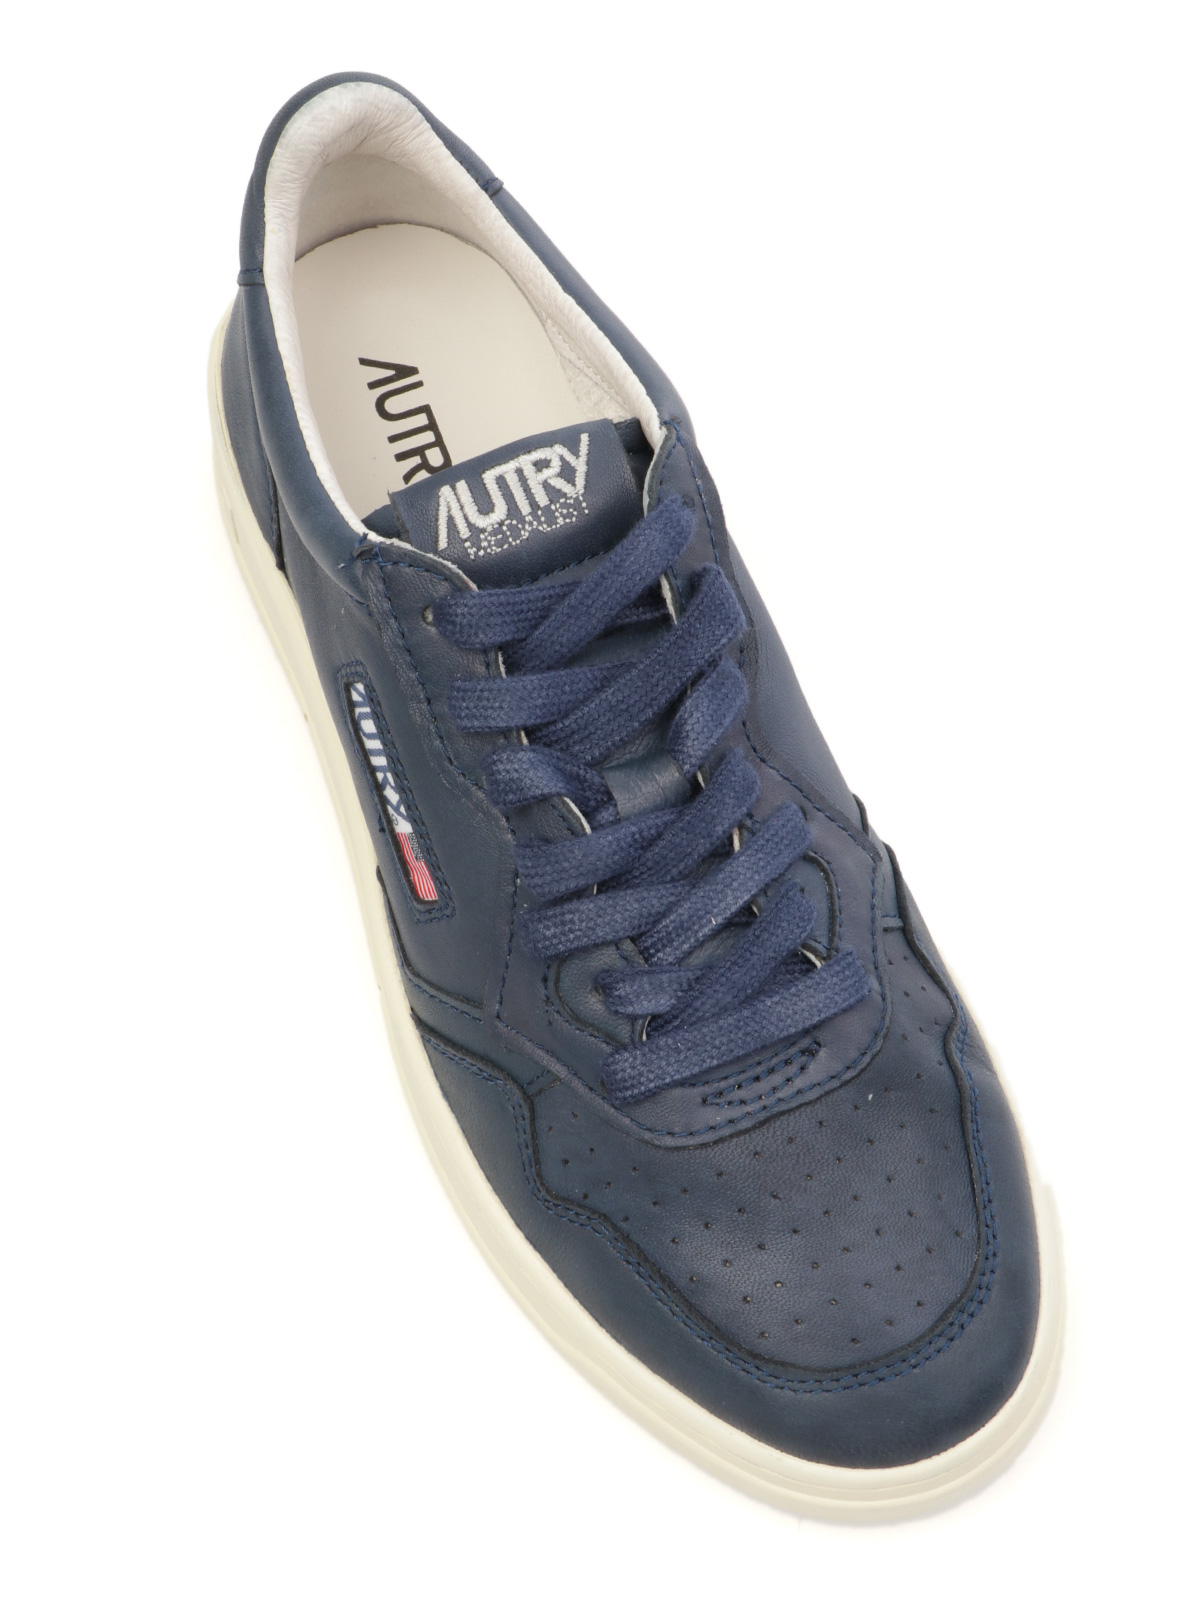 Picture of AUTRY | Men's AULM Leather Sneakers